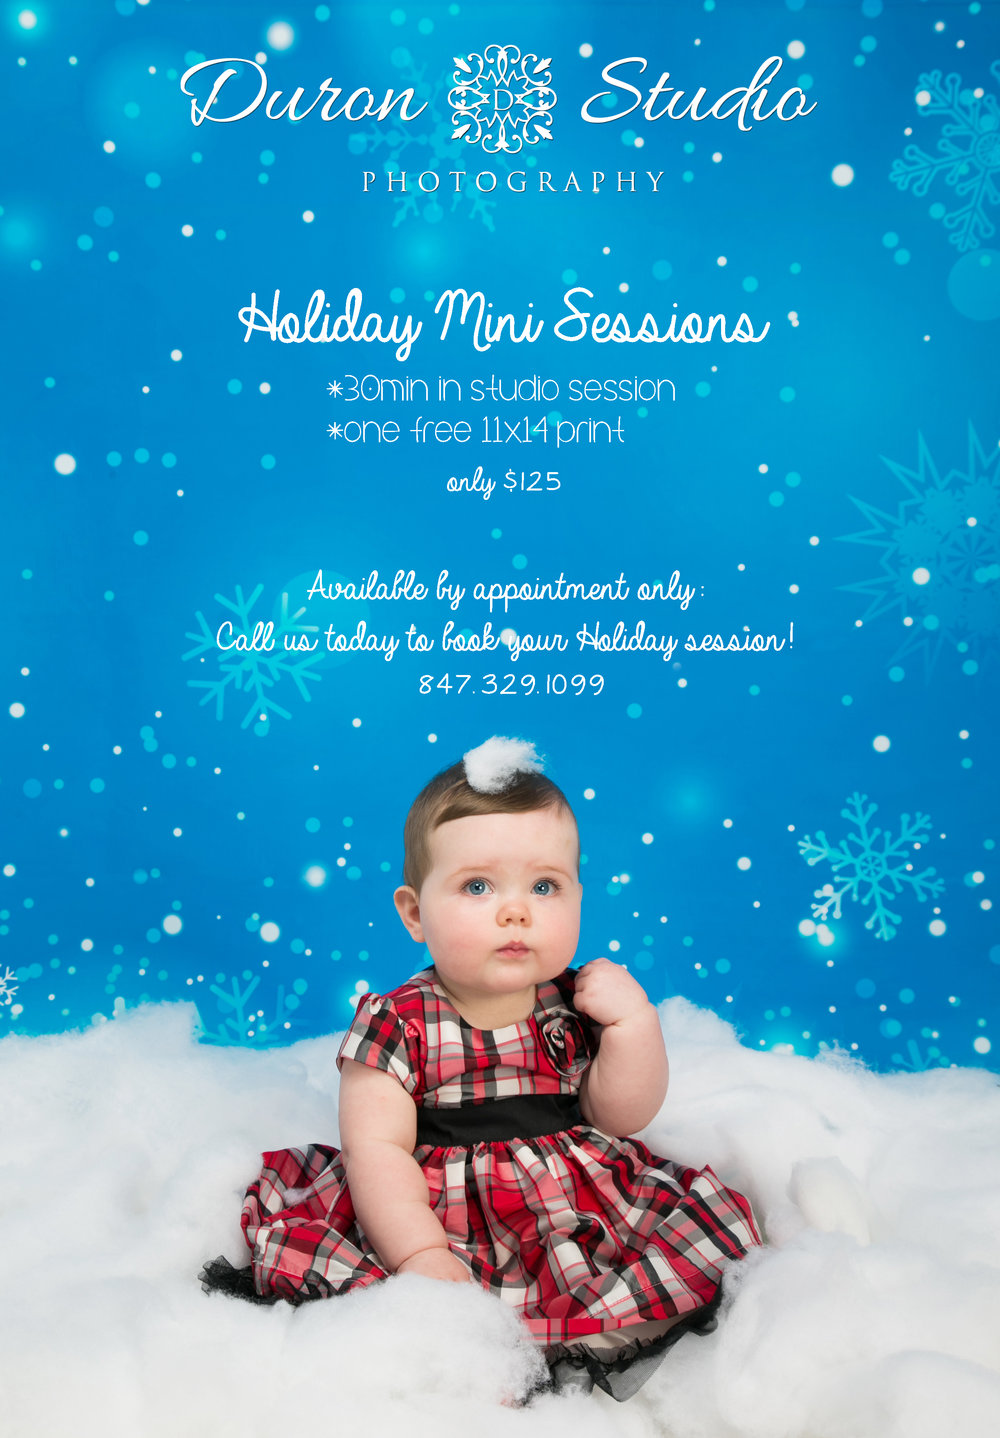 2018 Holiday Session Promo.jpg